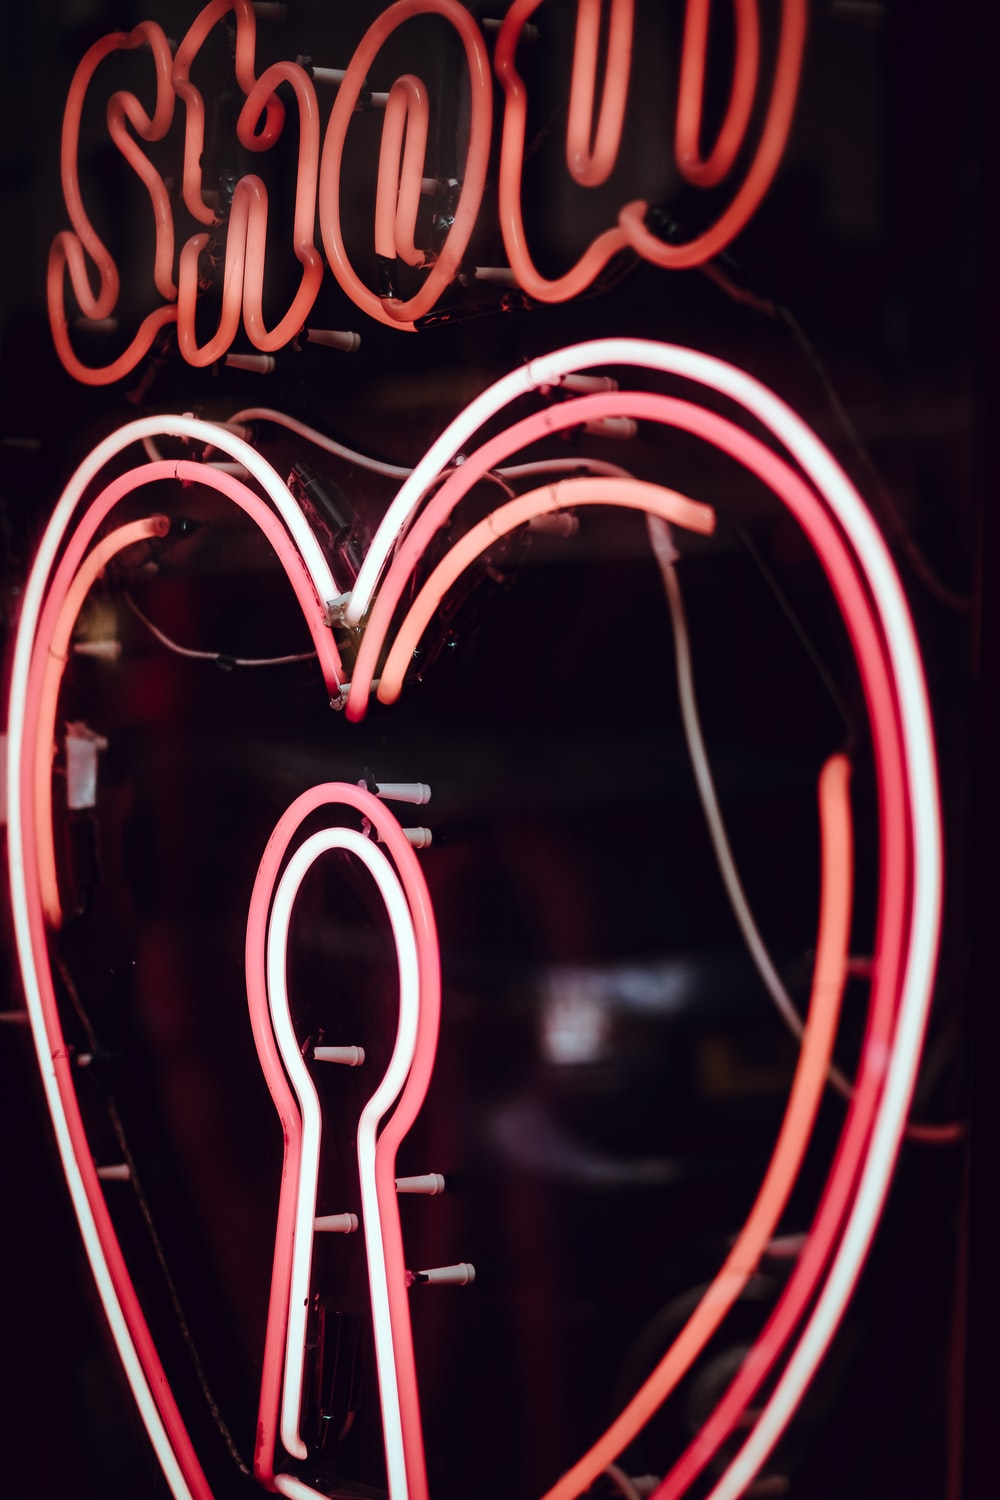 turned on heart LED signage